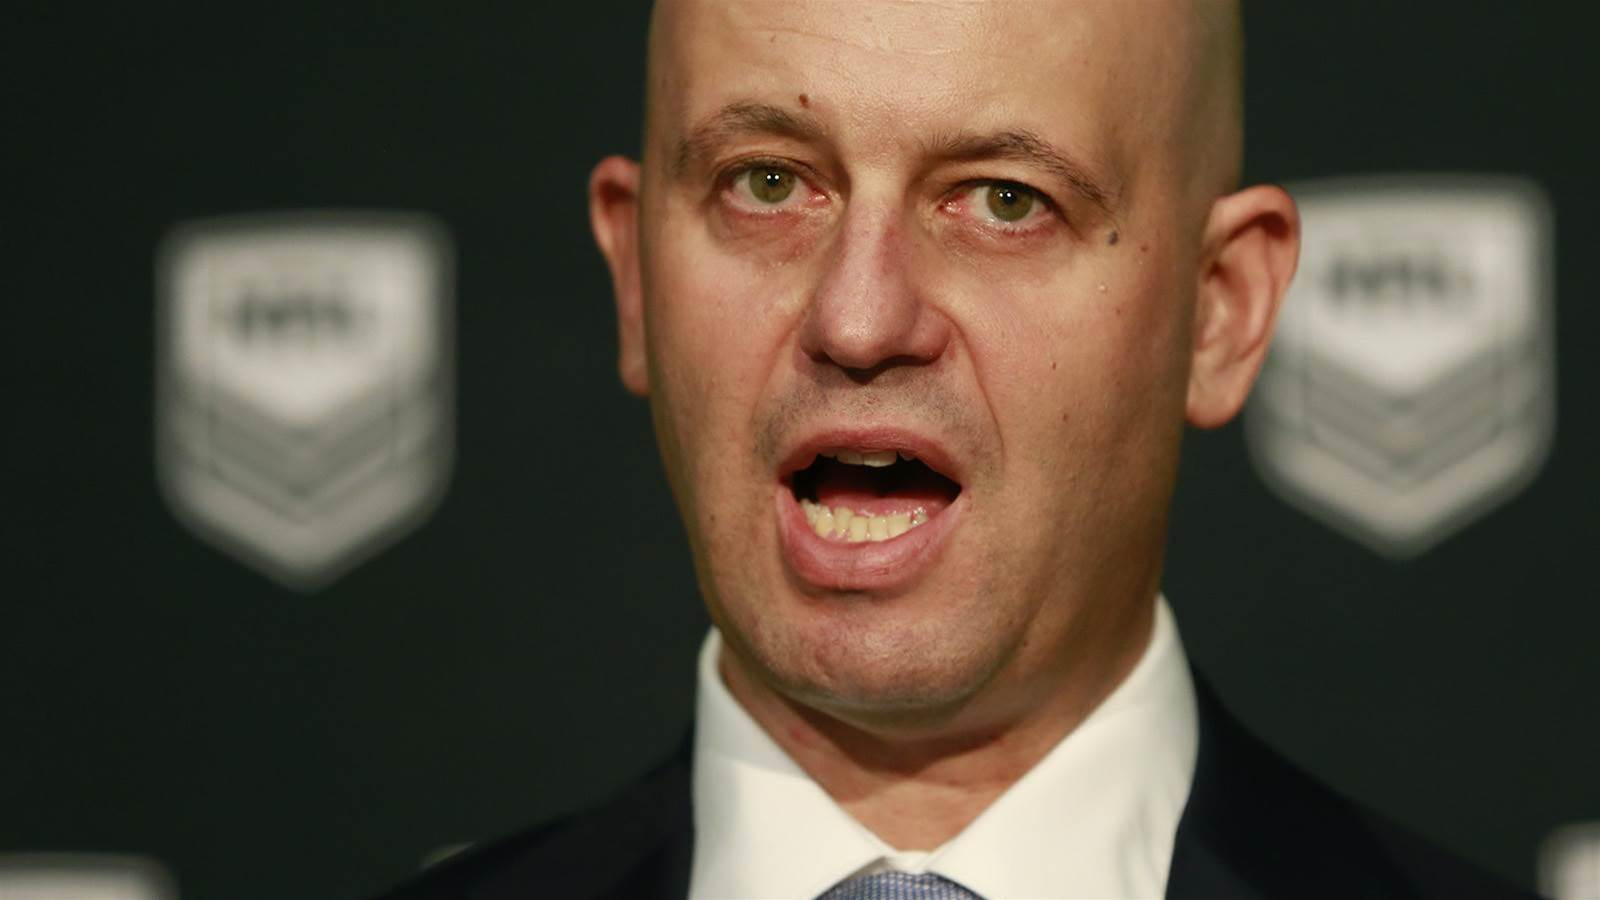 'Never again' - NRL crackdown after off-season of shame